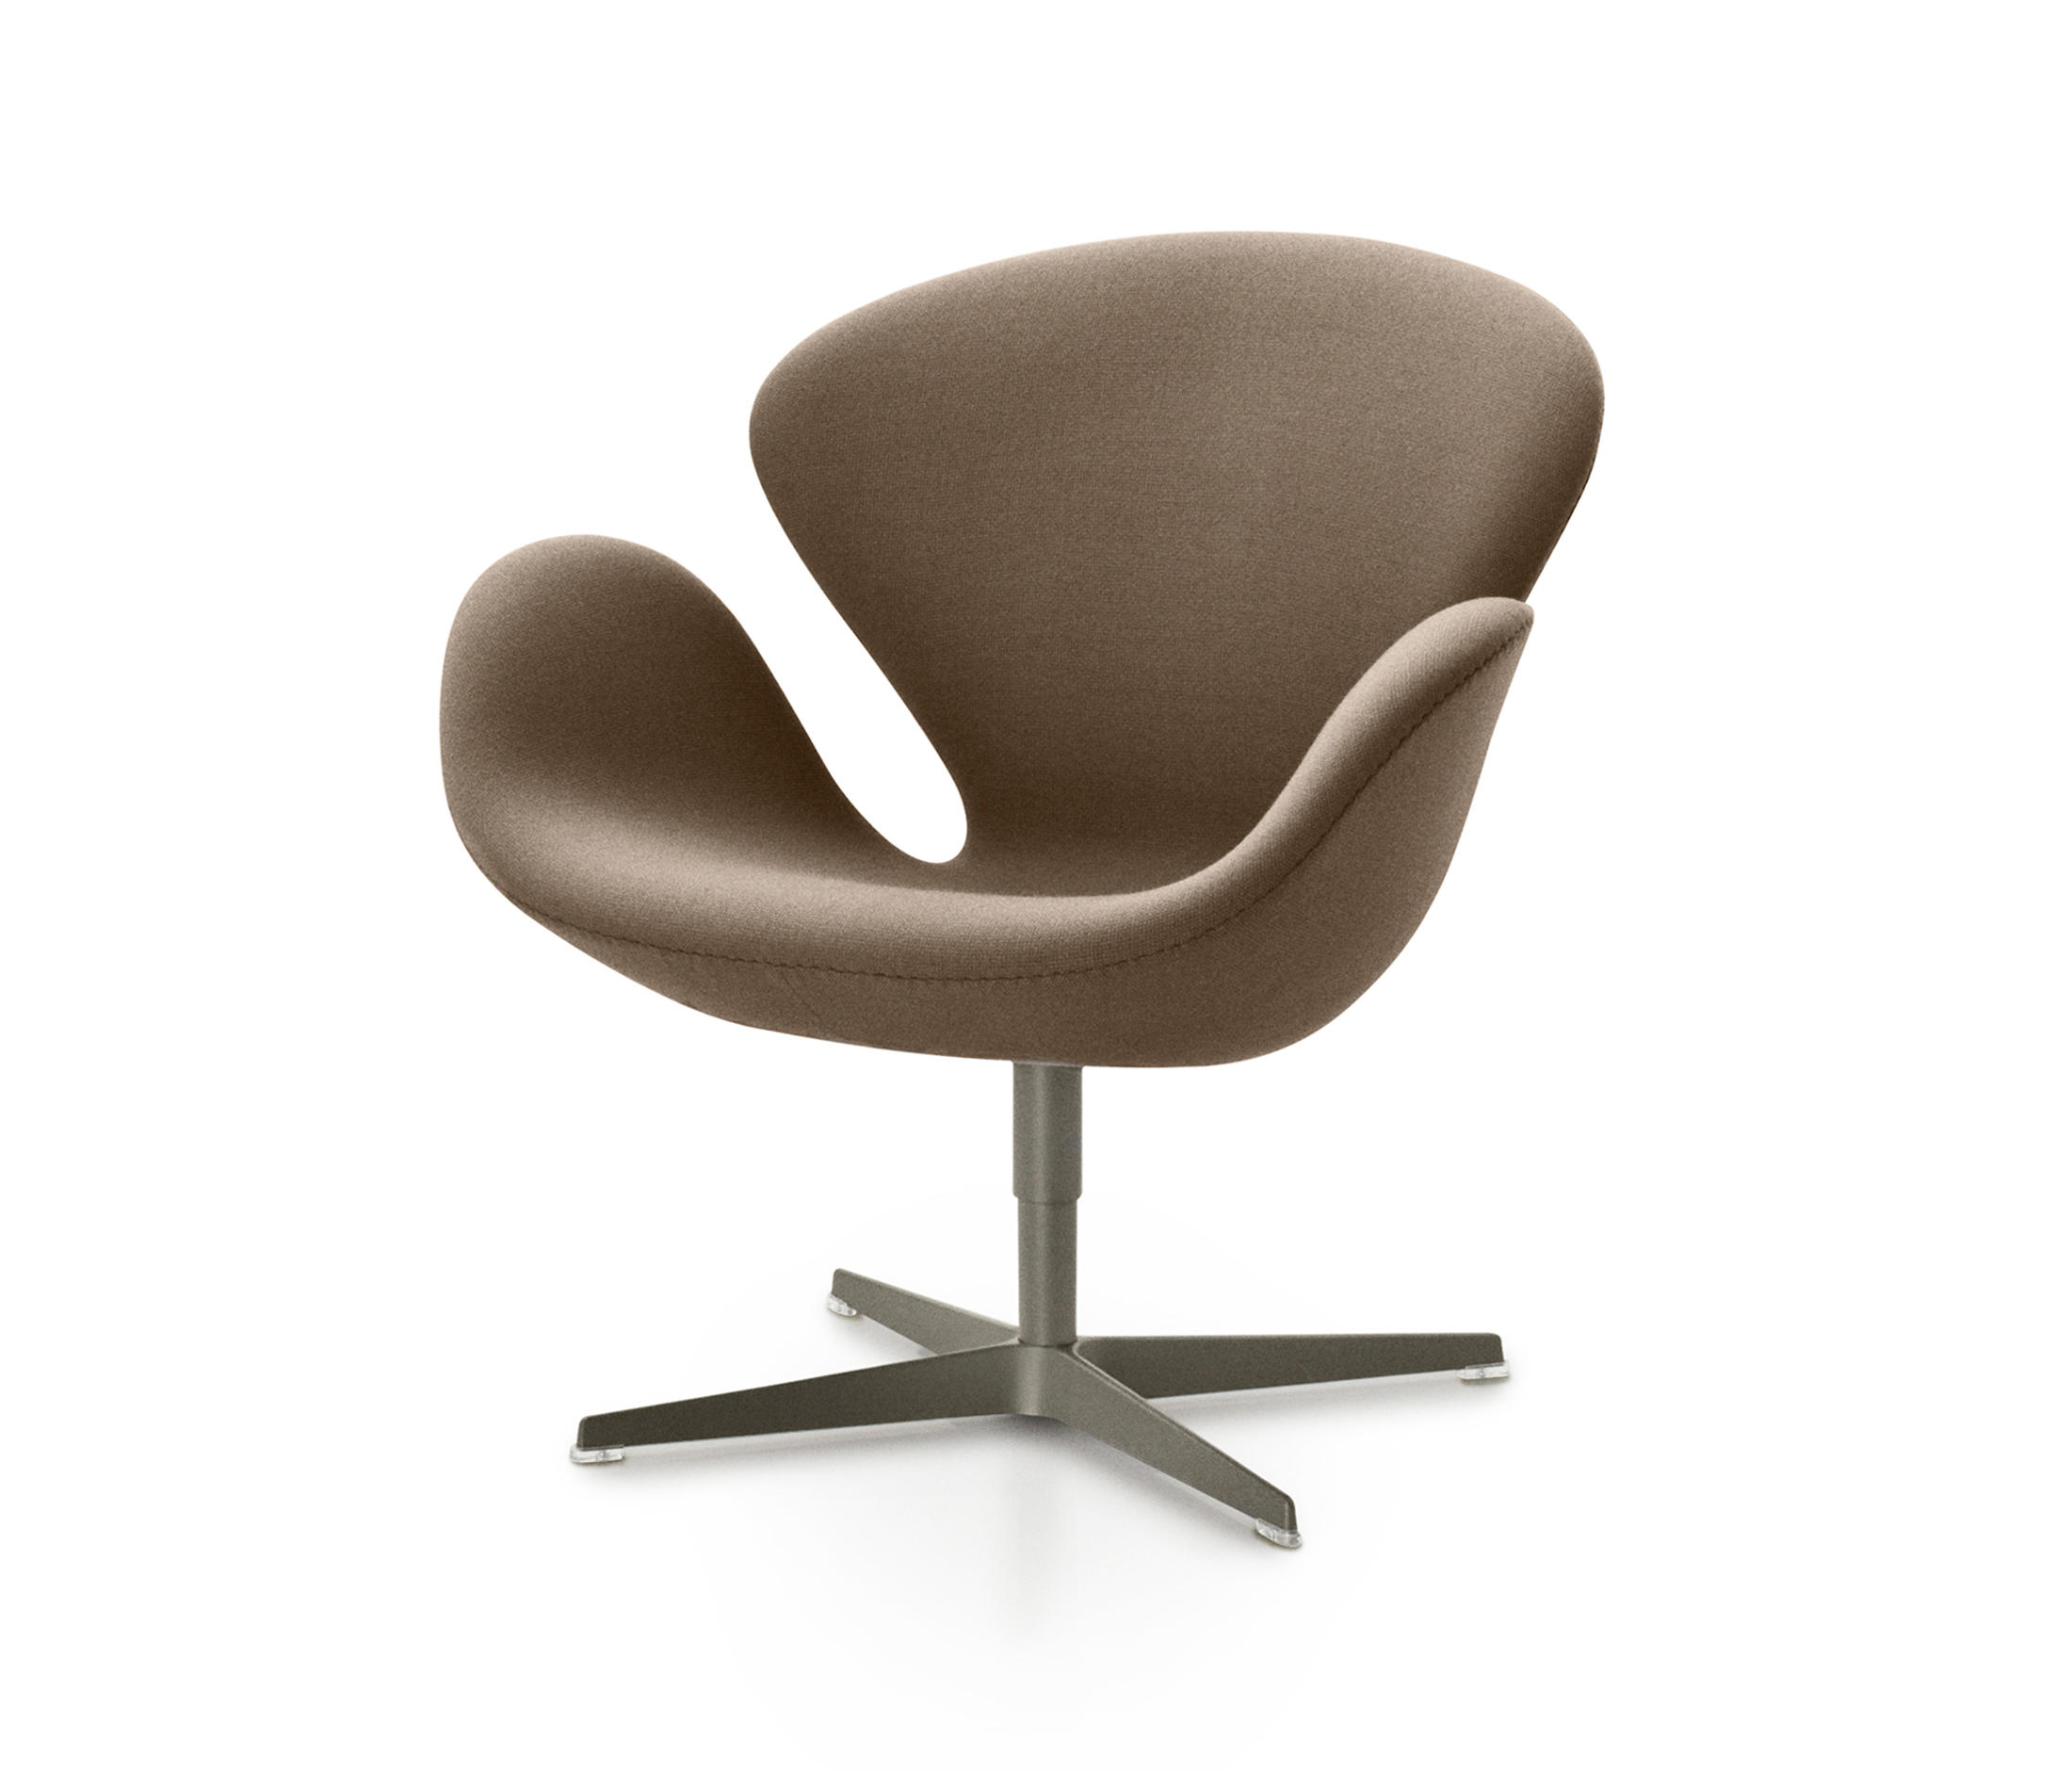 SWAN™ Lounge chairs from Fritz Hansen